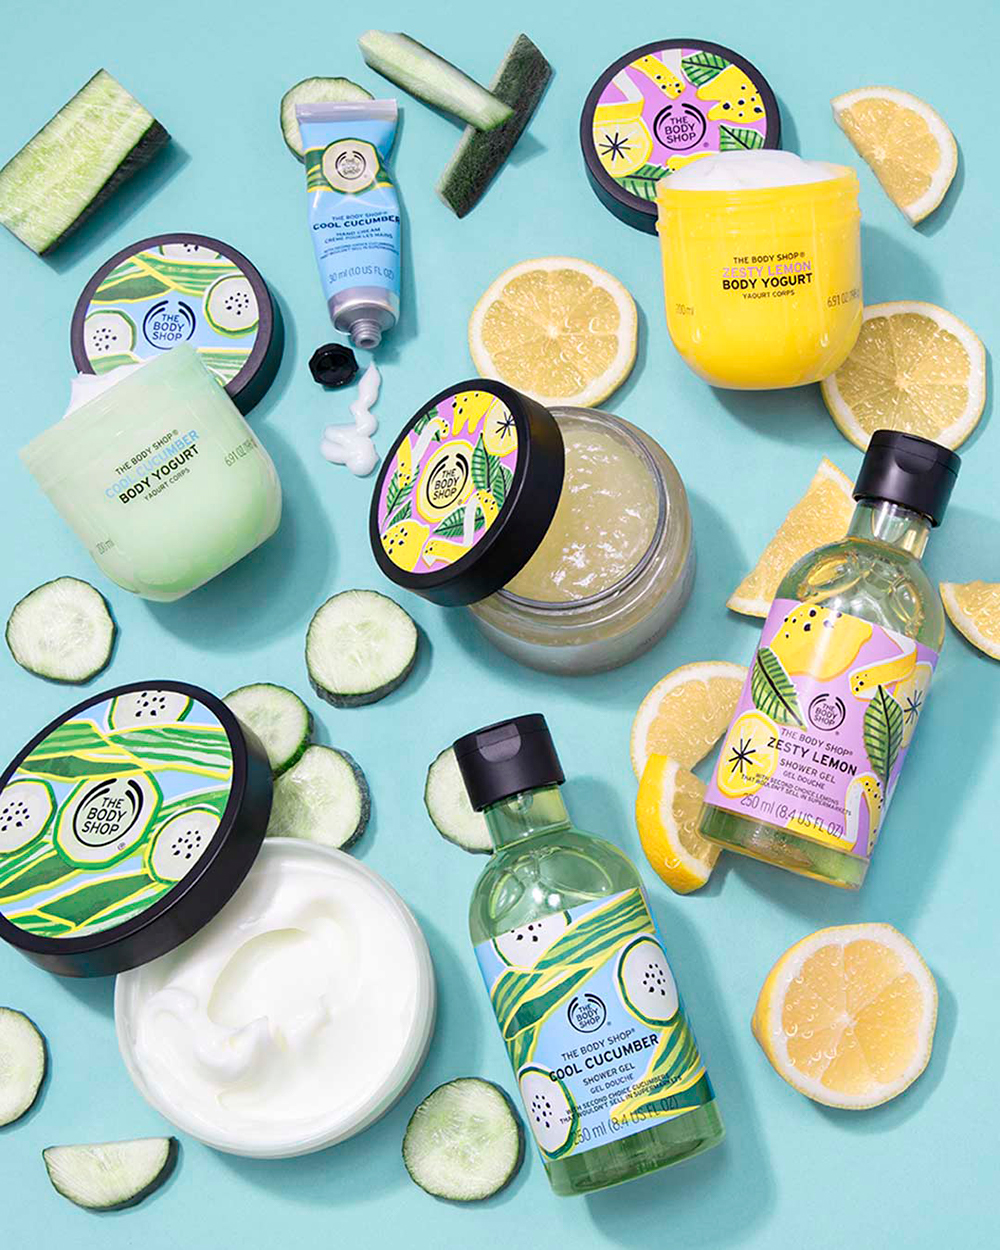 The Body Shop Zesty Lemon och Cool Cucumber